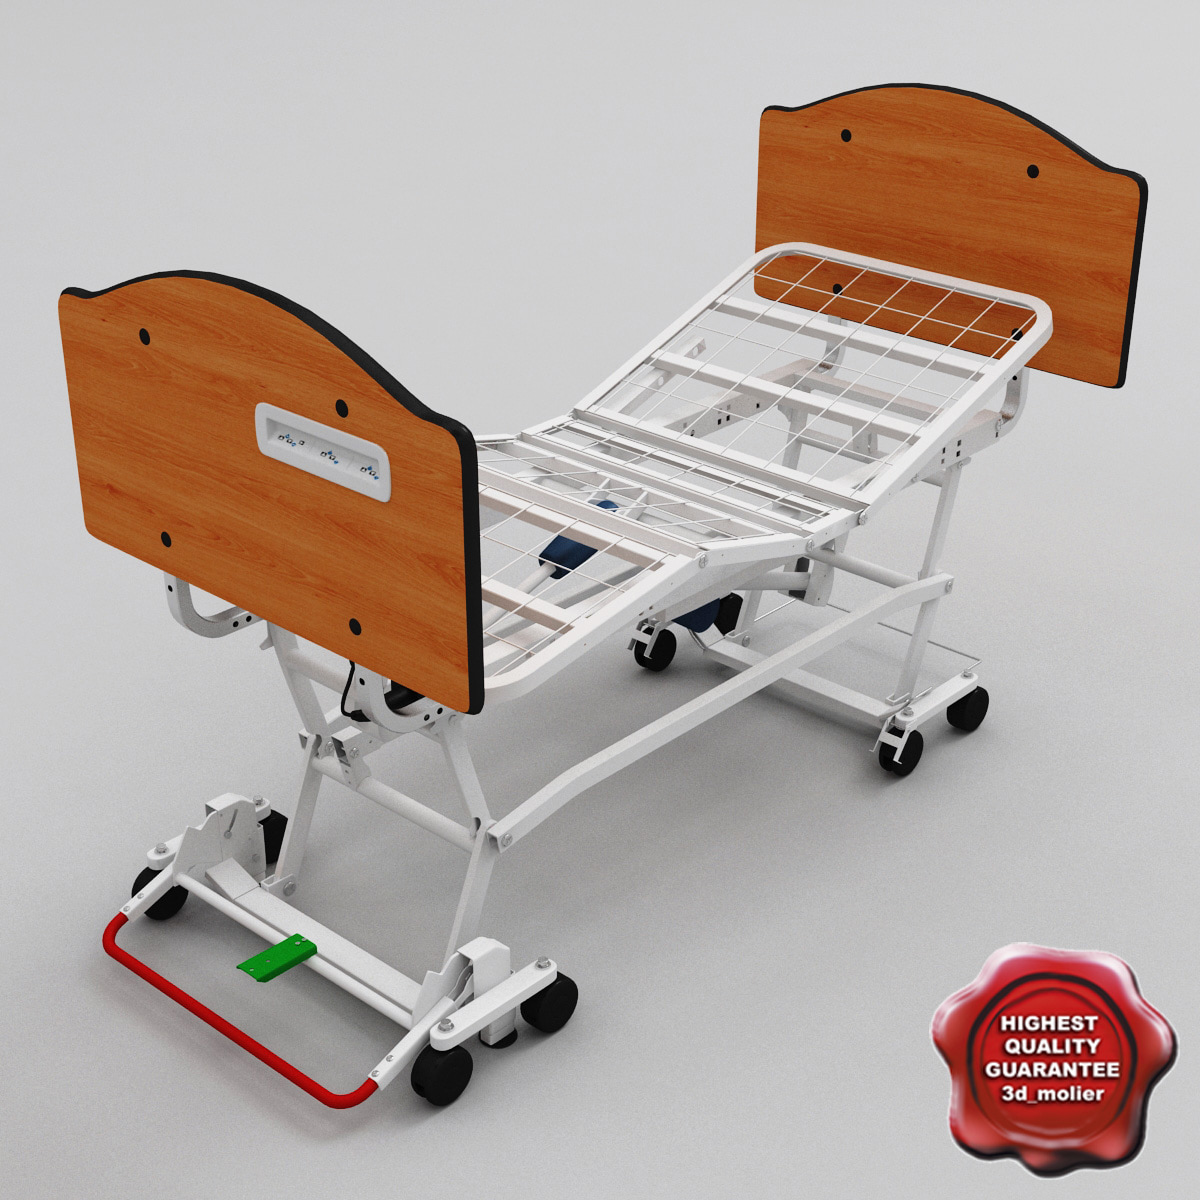 Full-Electric_Hospital_Bed_Zenith_00.jpg